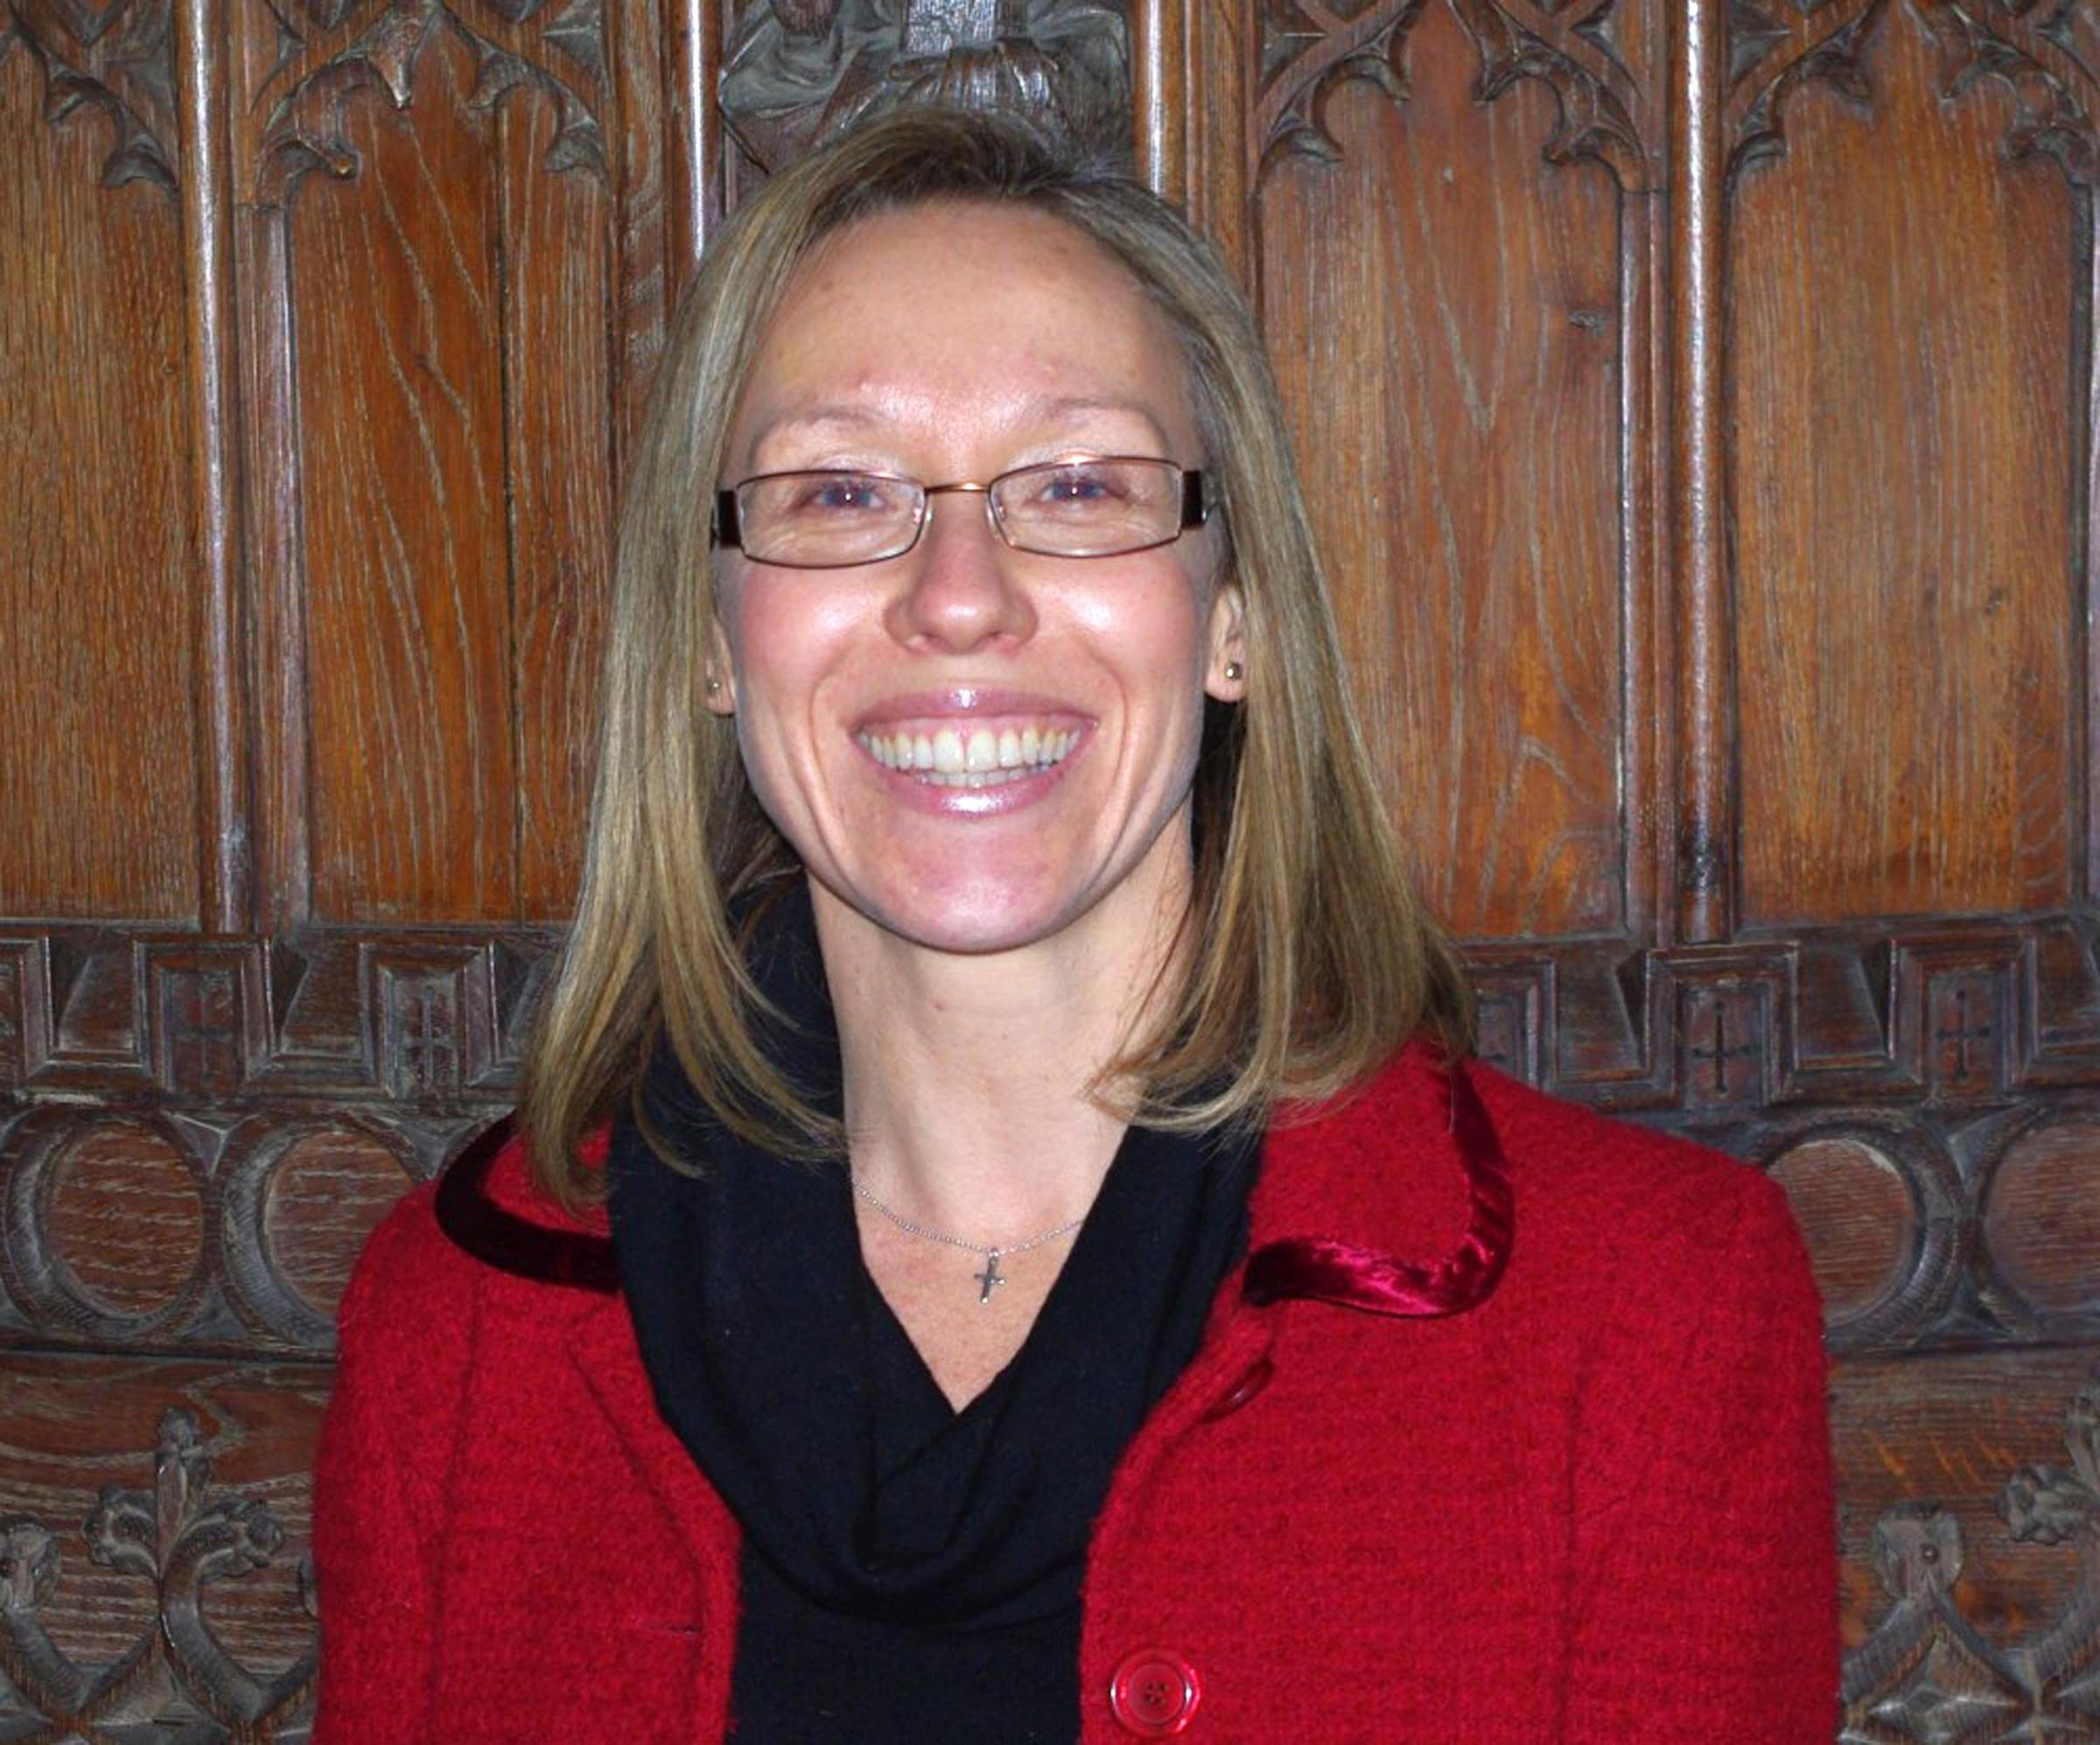 APPOINTED: Durham Cathedral has appointed Amanda Anderson as new chapter clerk and chief operating officer